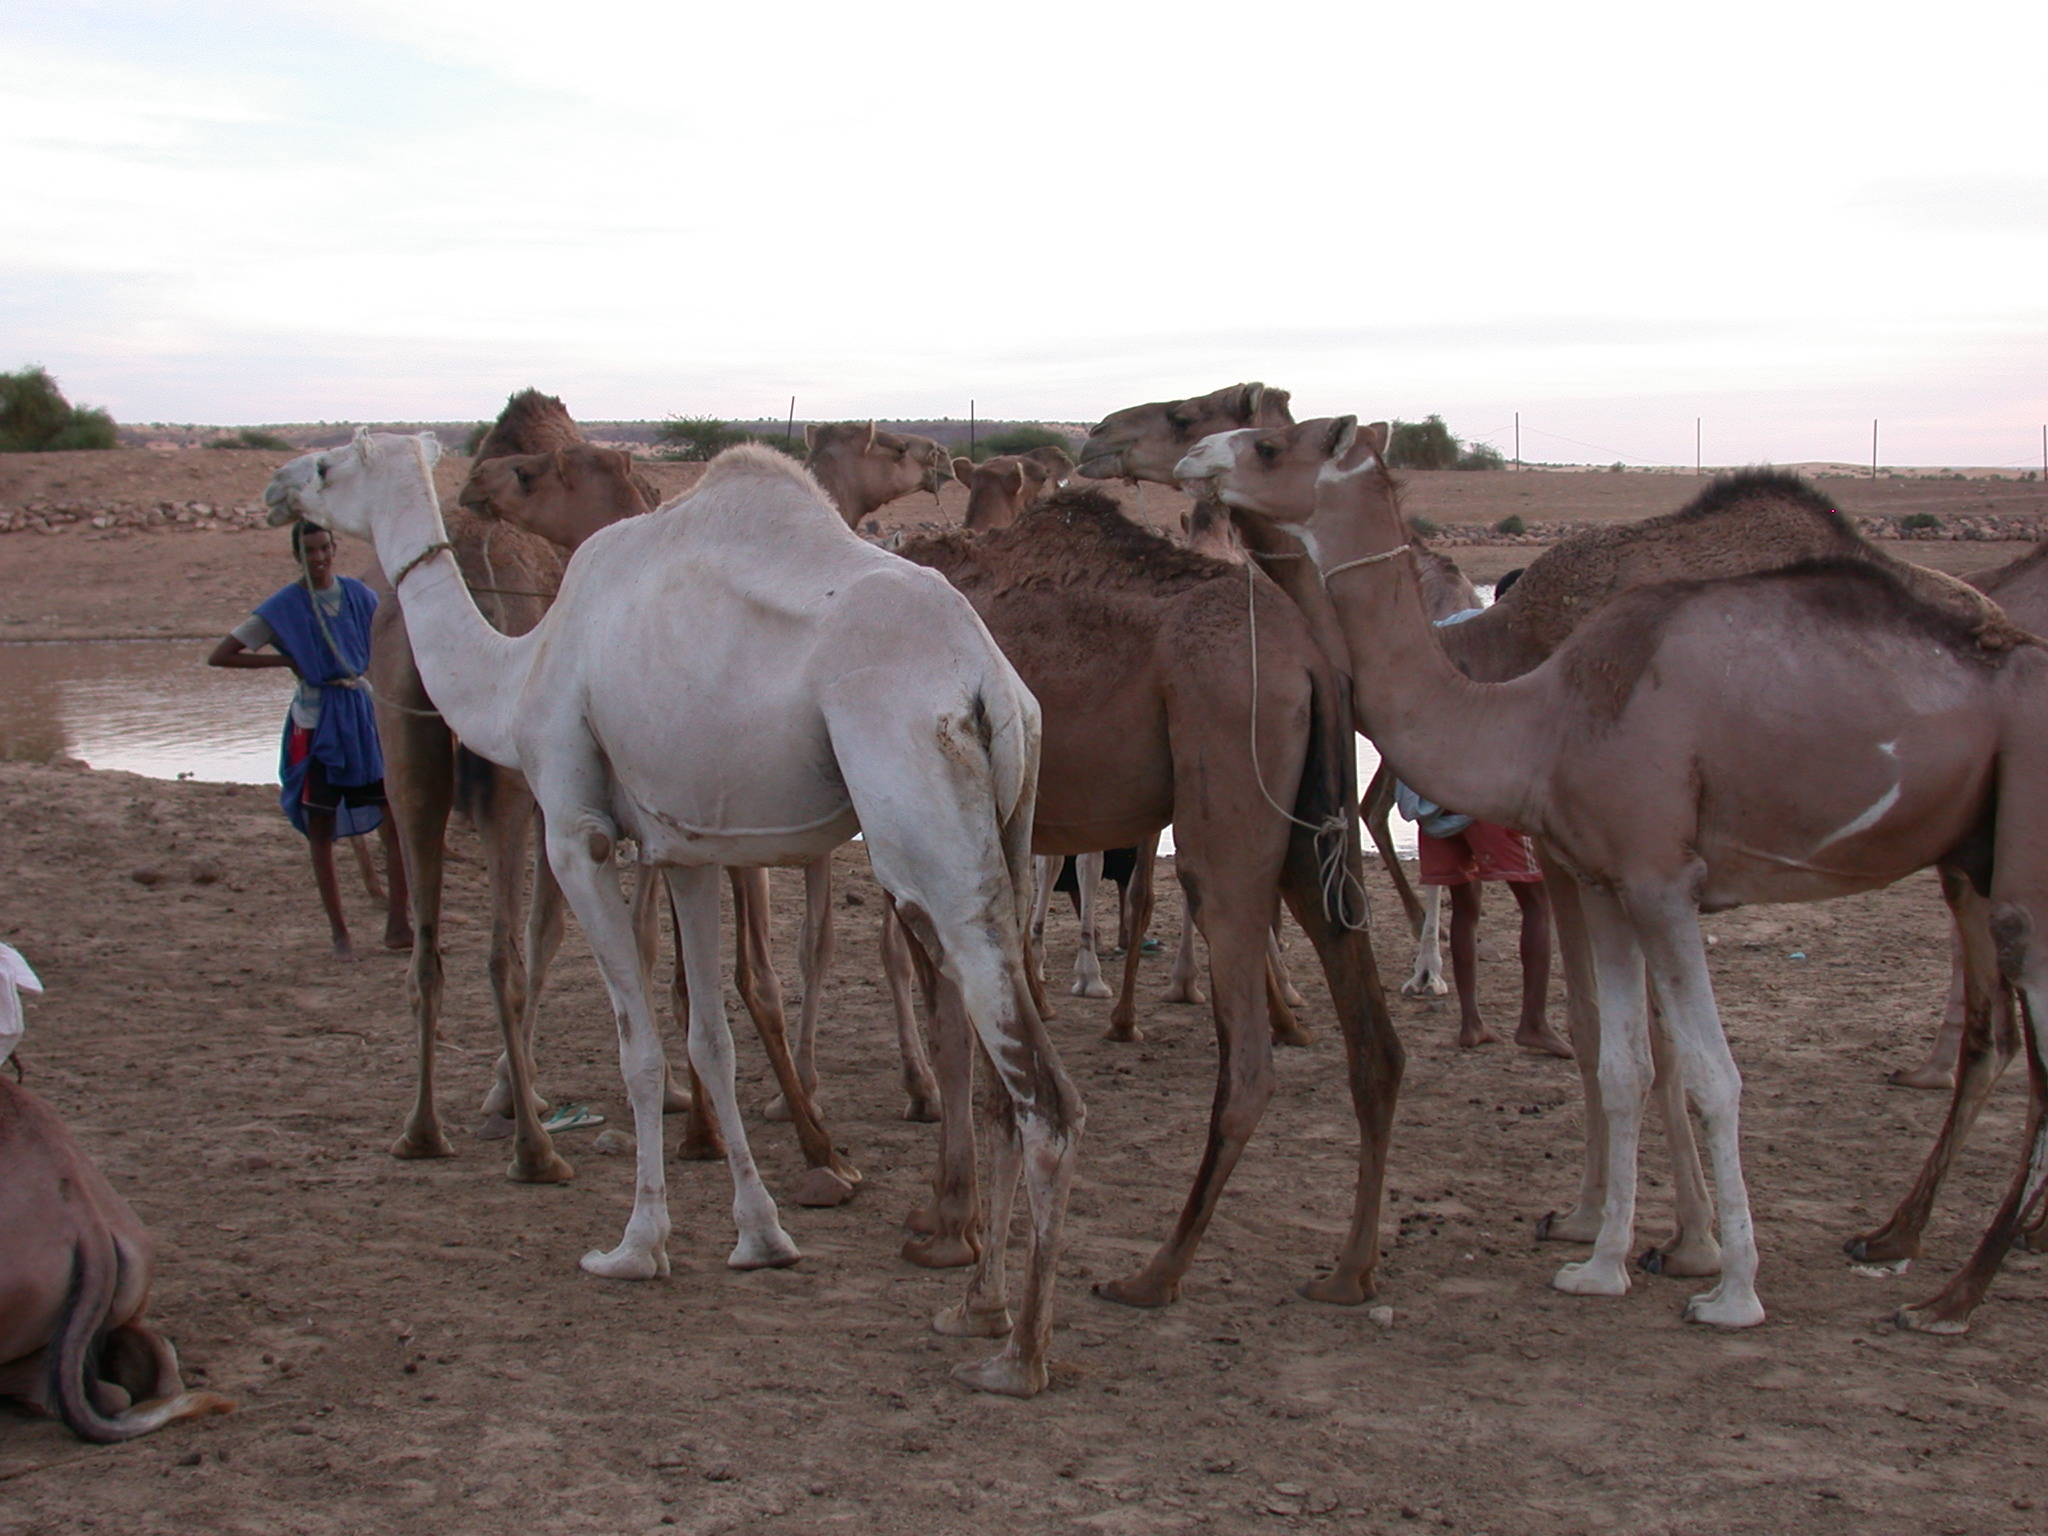 Camels and Tender at Reservoir, Oualata, Mauritania